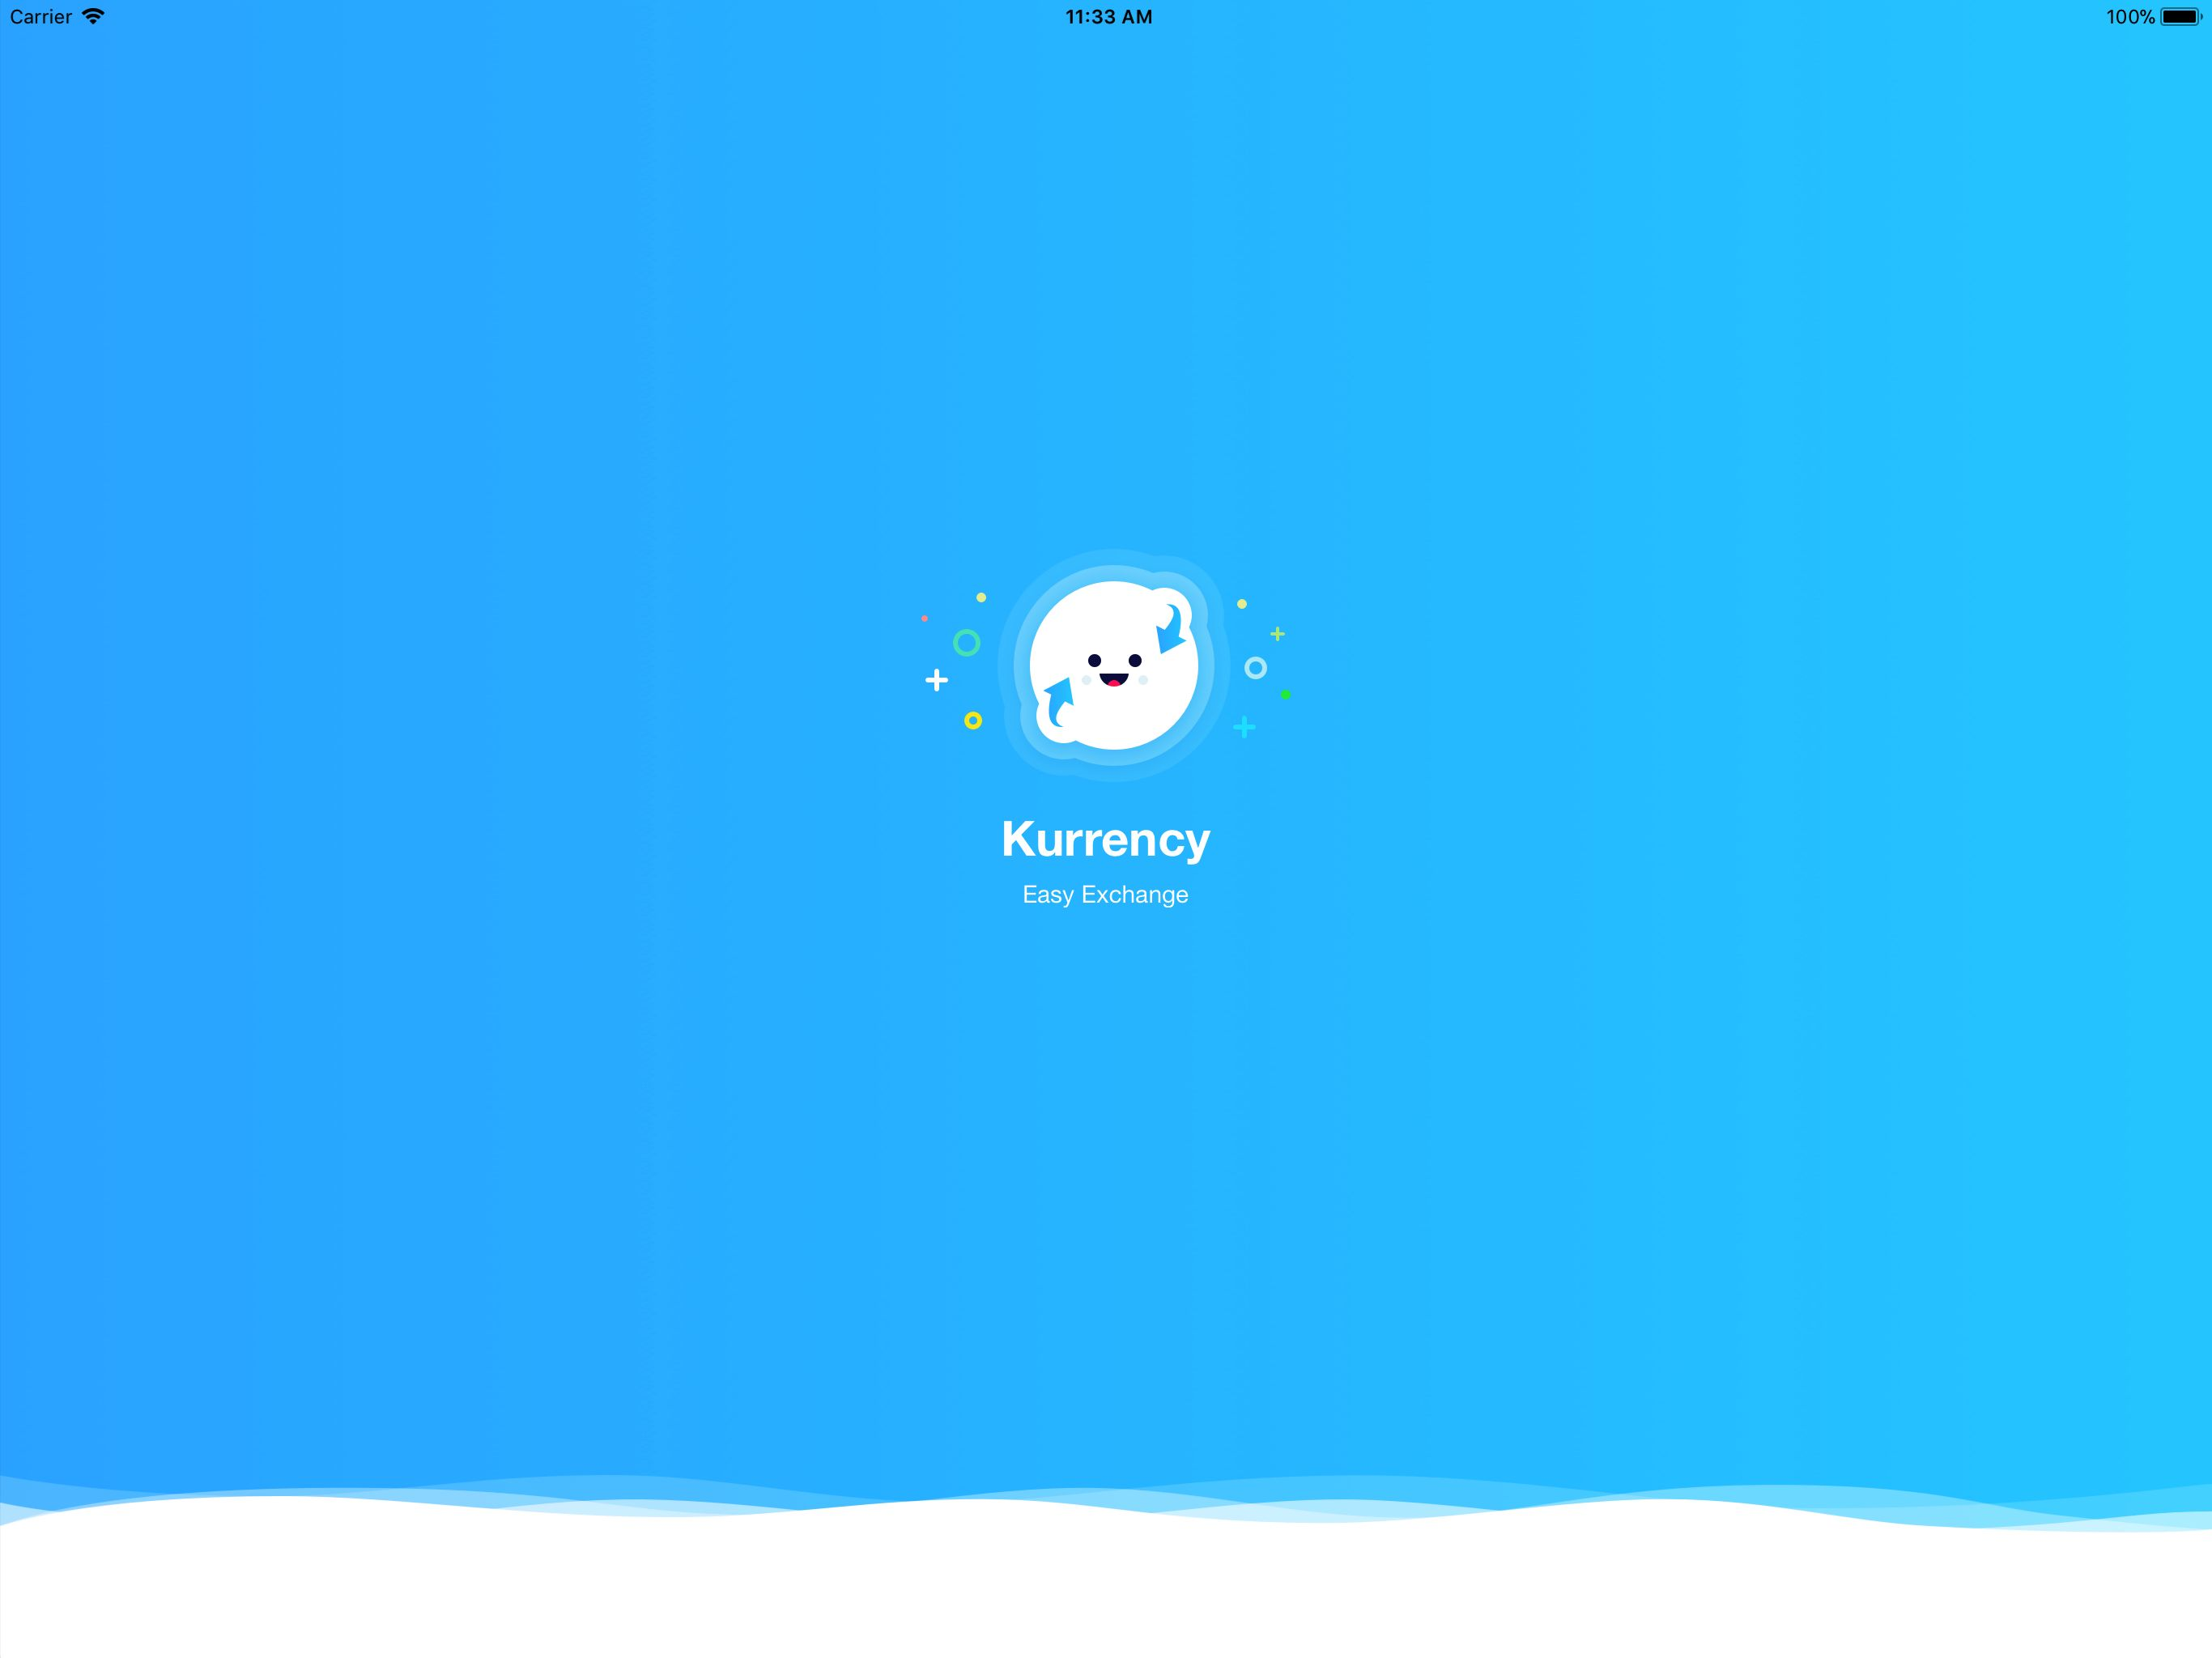 Kurrency - Currency Converter iOS Template Screenshot 7